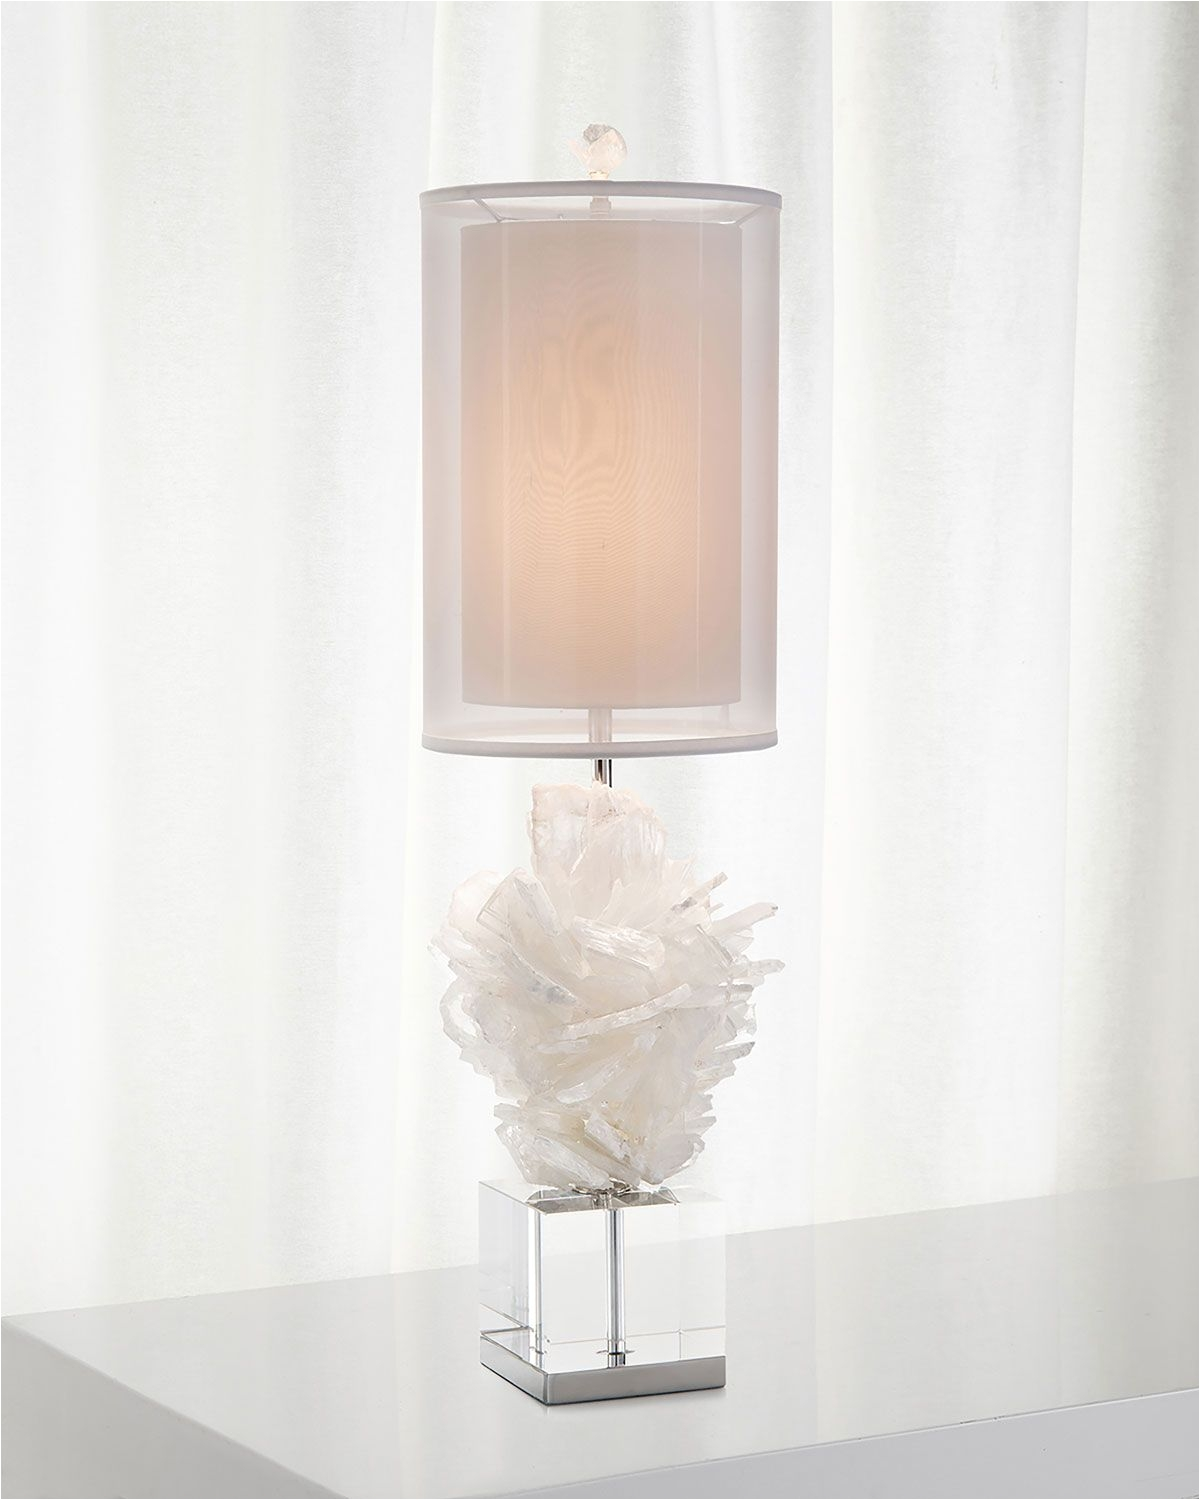 Neiman Marcus Lamps John Richard Collection Celene Lamp Products